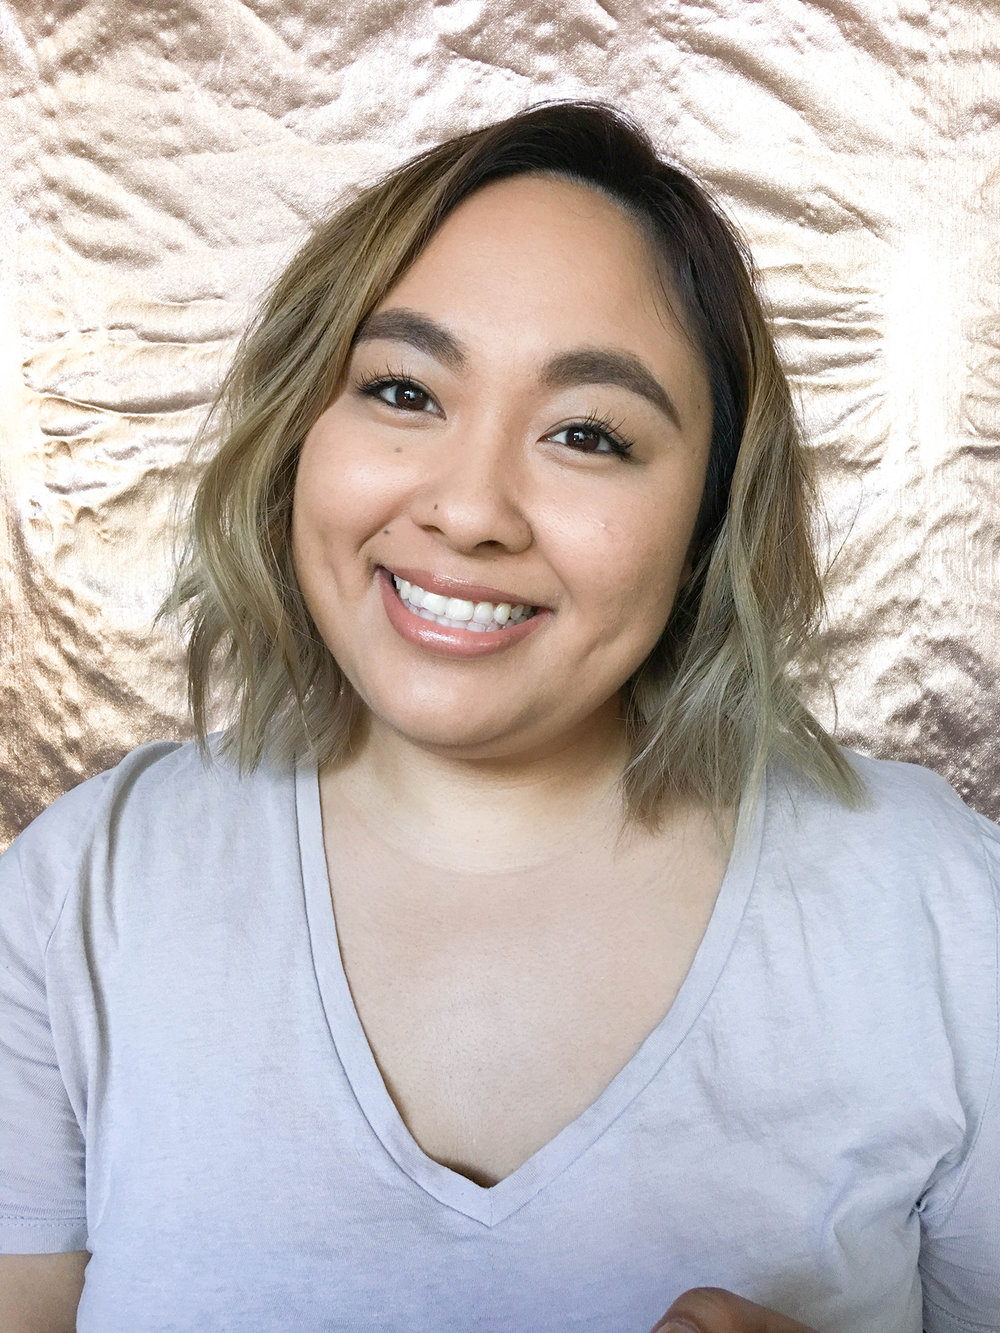 How to wear cream foundation when you have oily skin. Beautybyjessika.com.